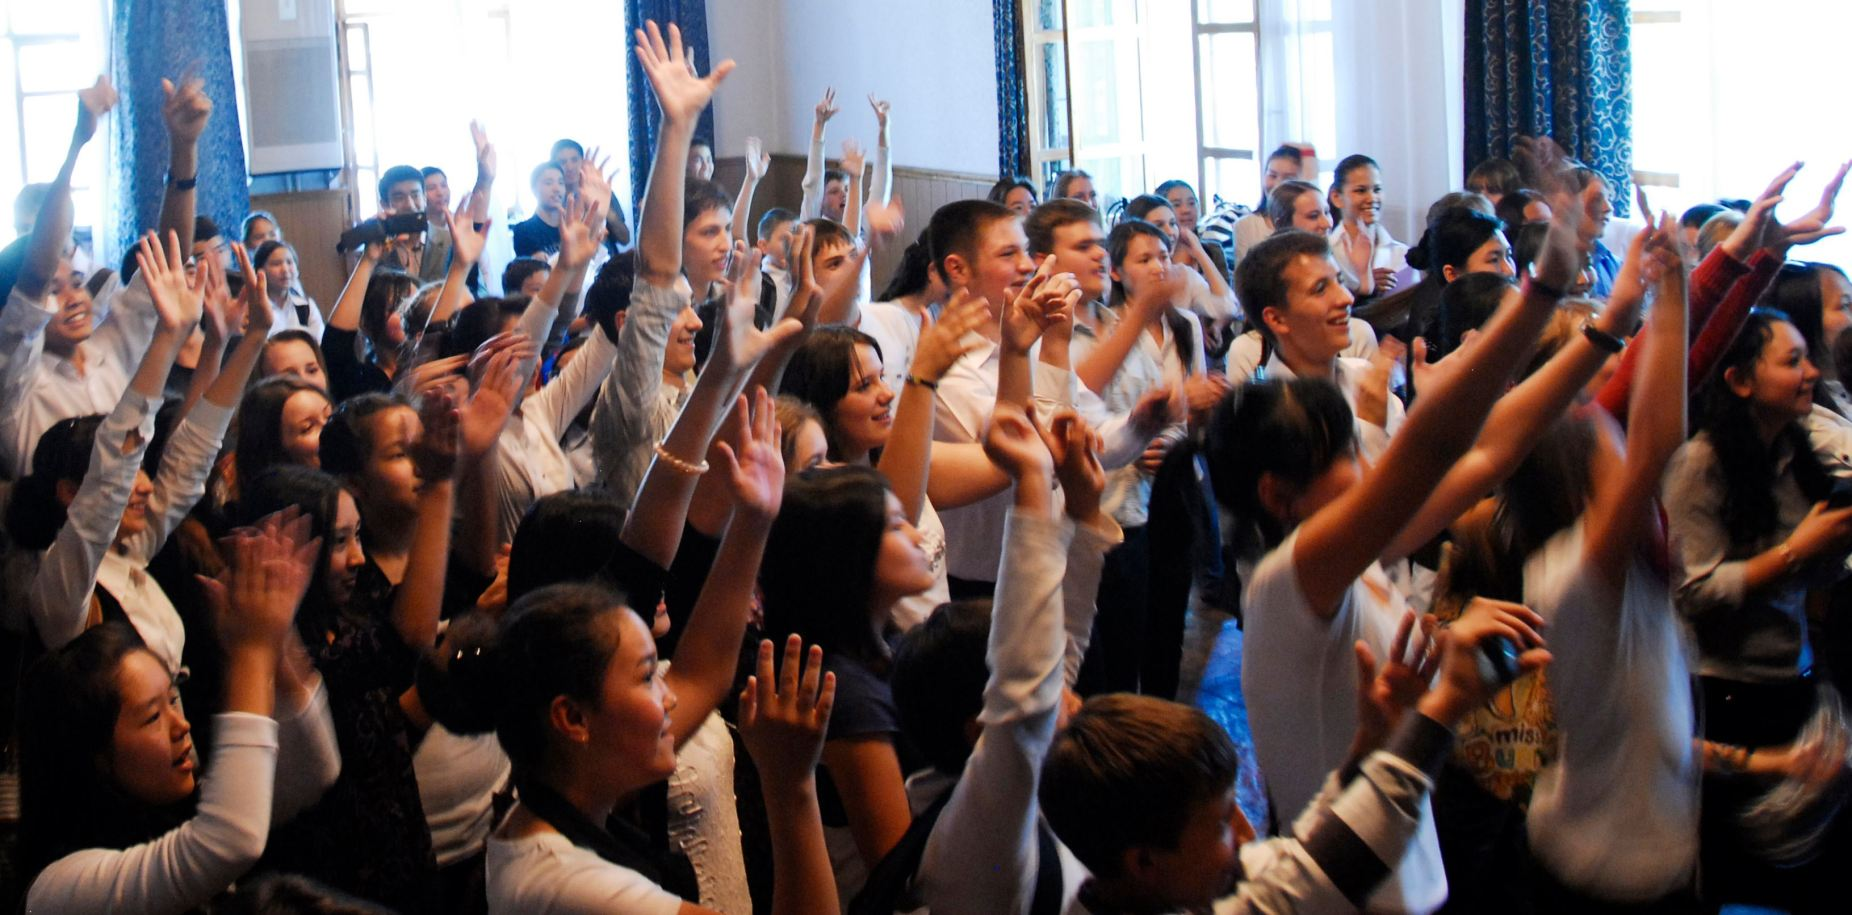 Image: Teenage students raising their hands enthusiastically.